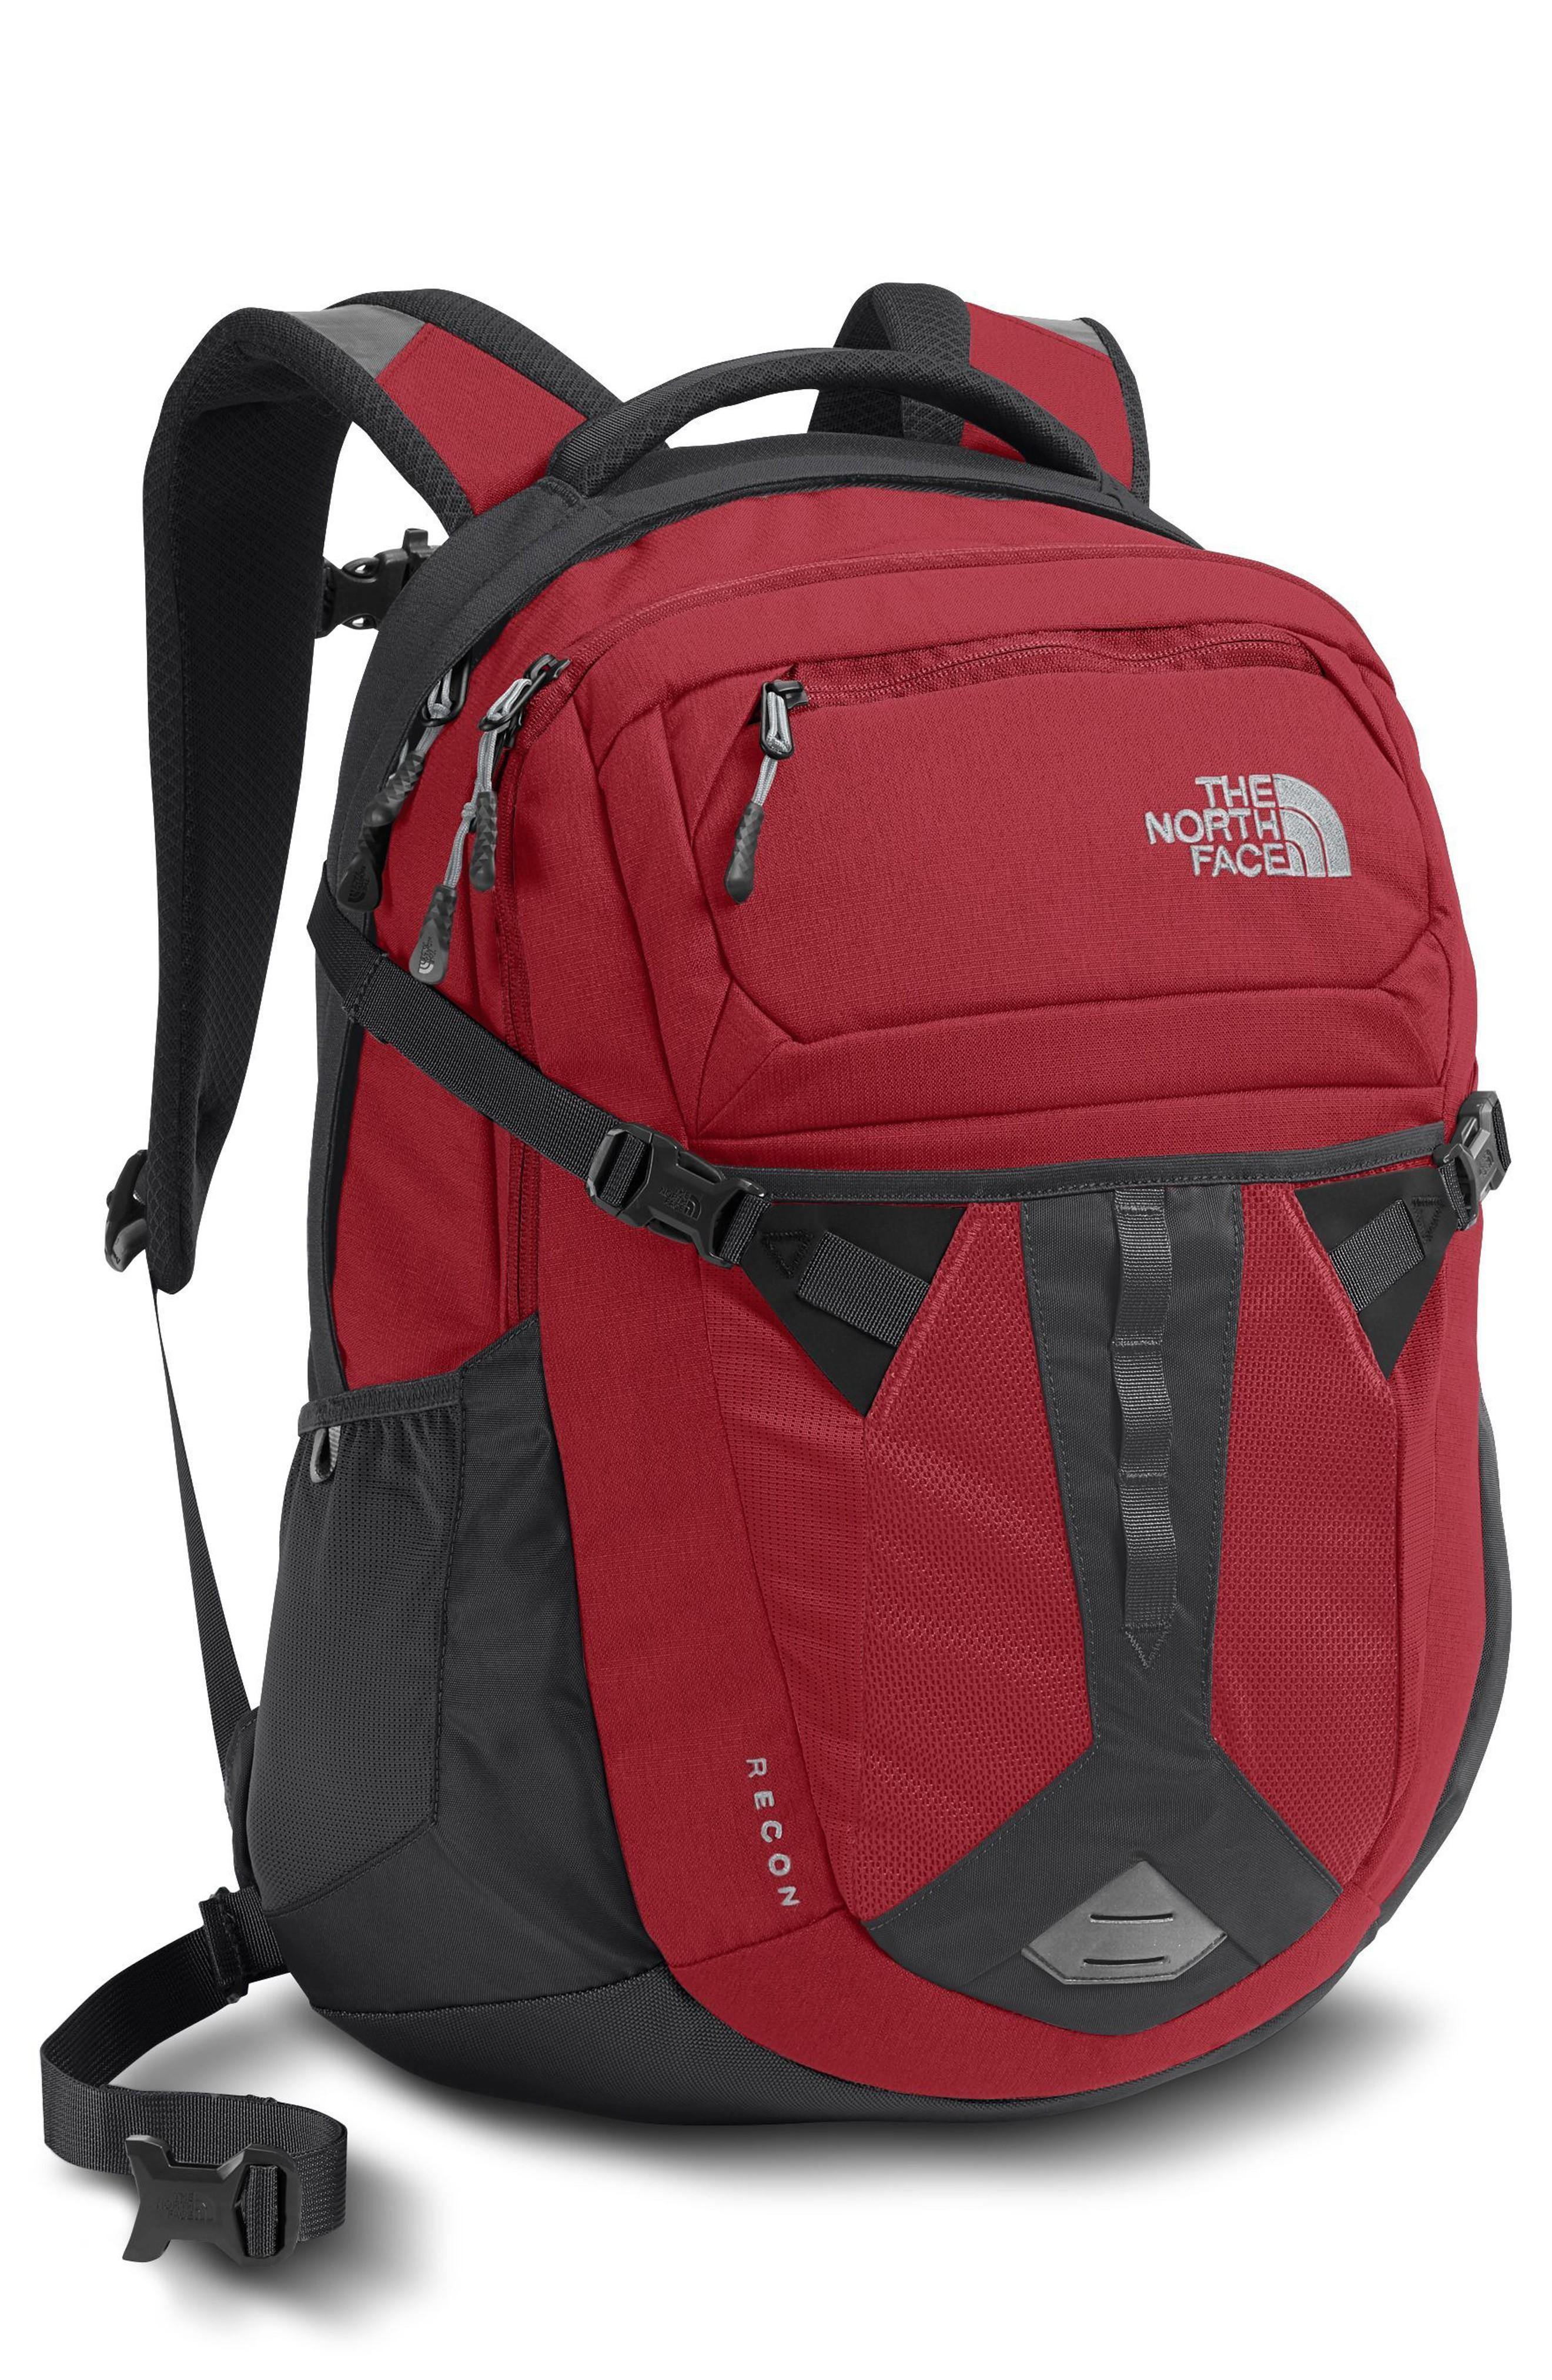 b502a90353a8 The North Face Recon Backpack - Red In Rage Red/ Asphalt Grey | ModeSens